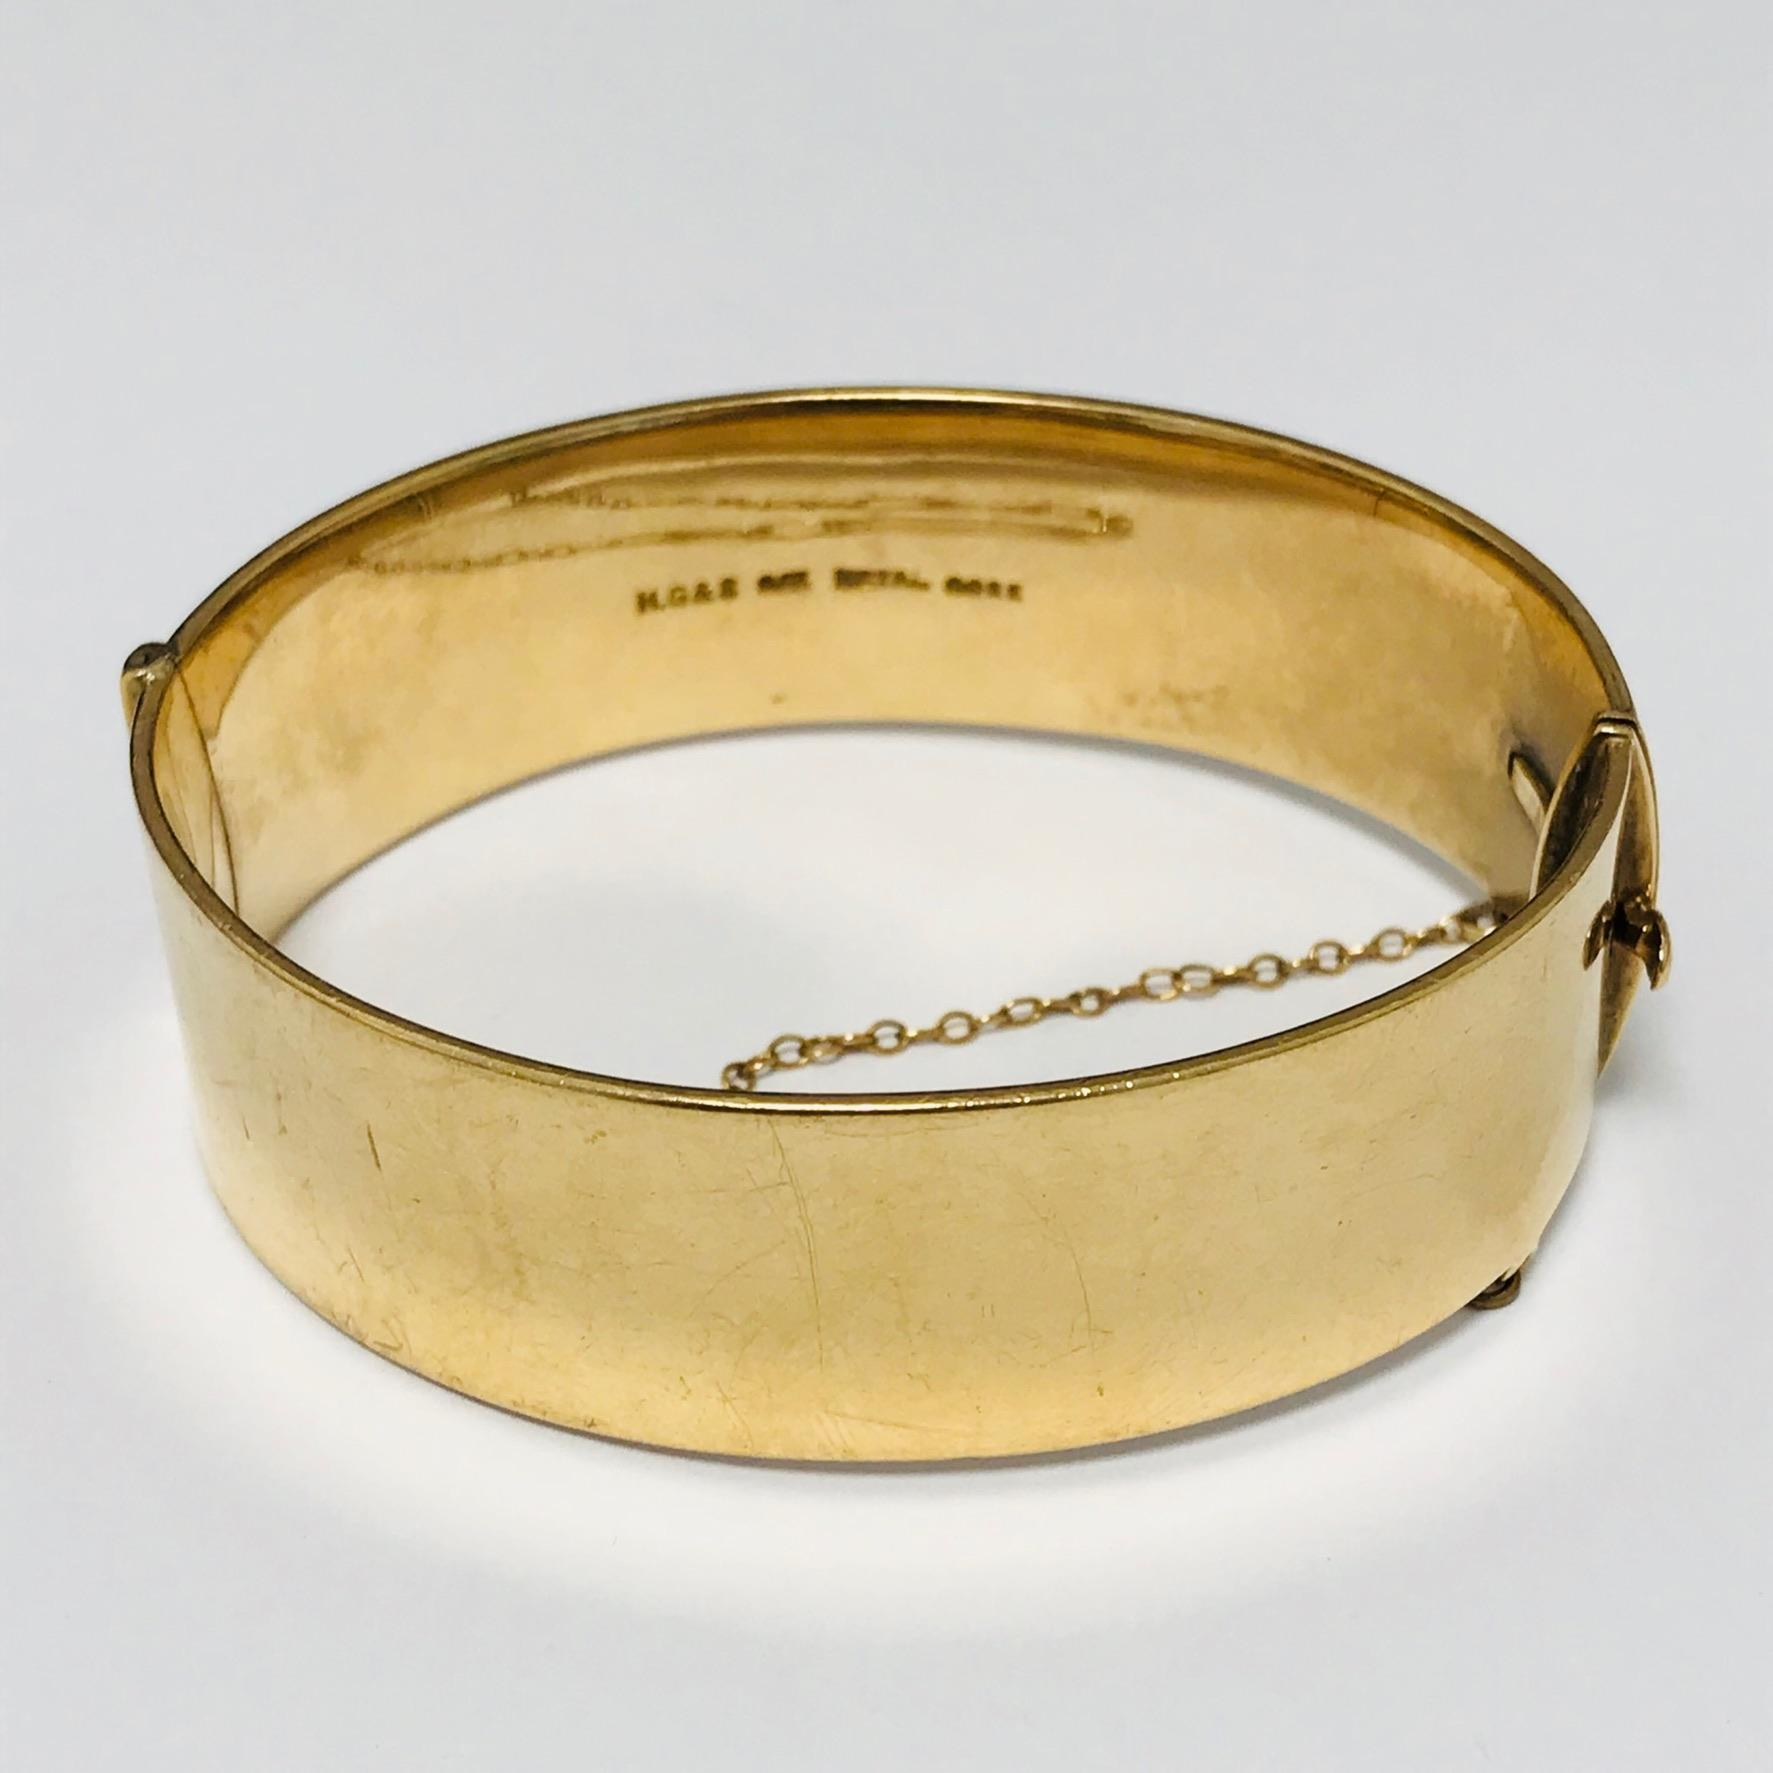 Art Deco Rolled Gold Bracelet Antiques Posted For 163 15